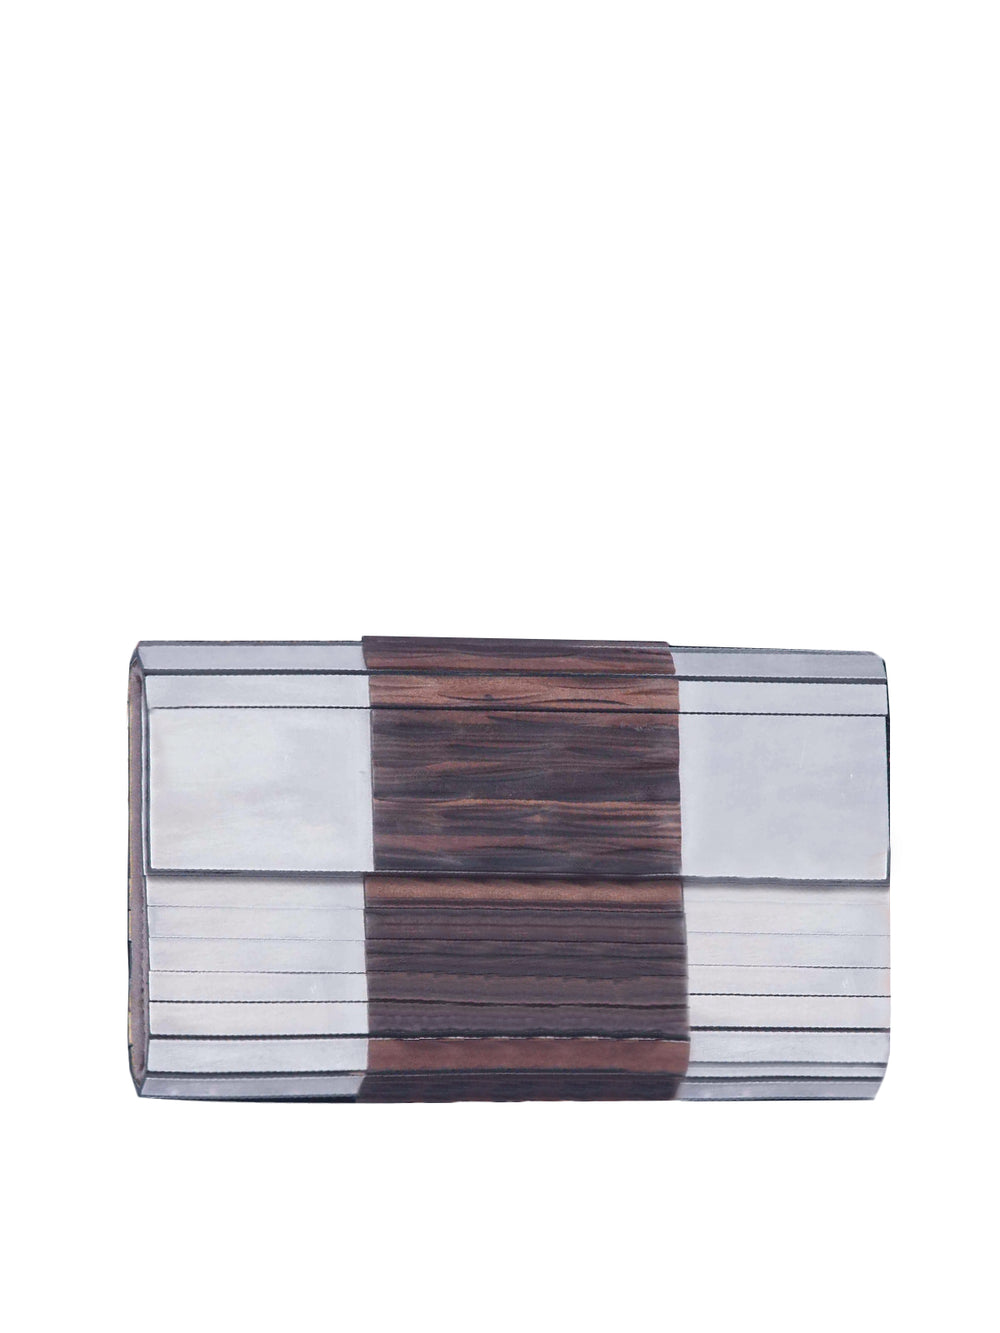 Taop Strip Clutch, MELE+MARIE - elilhaam.com